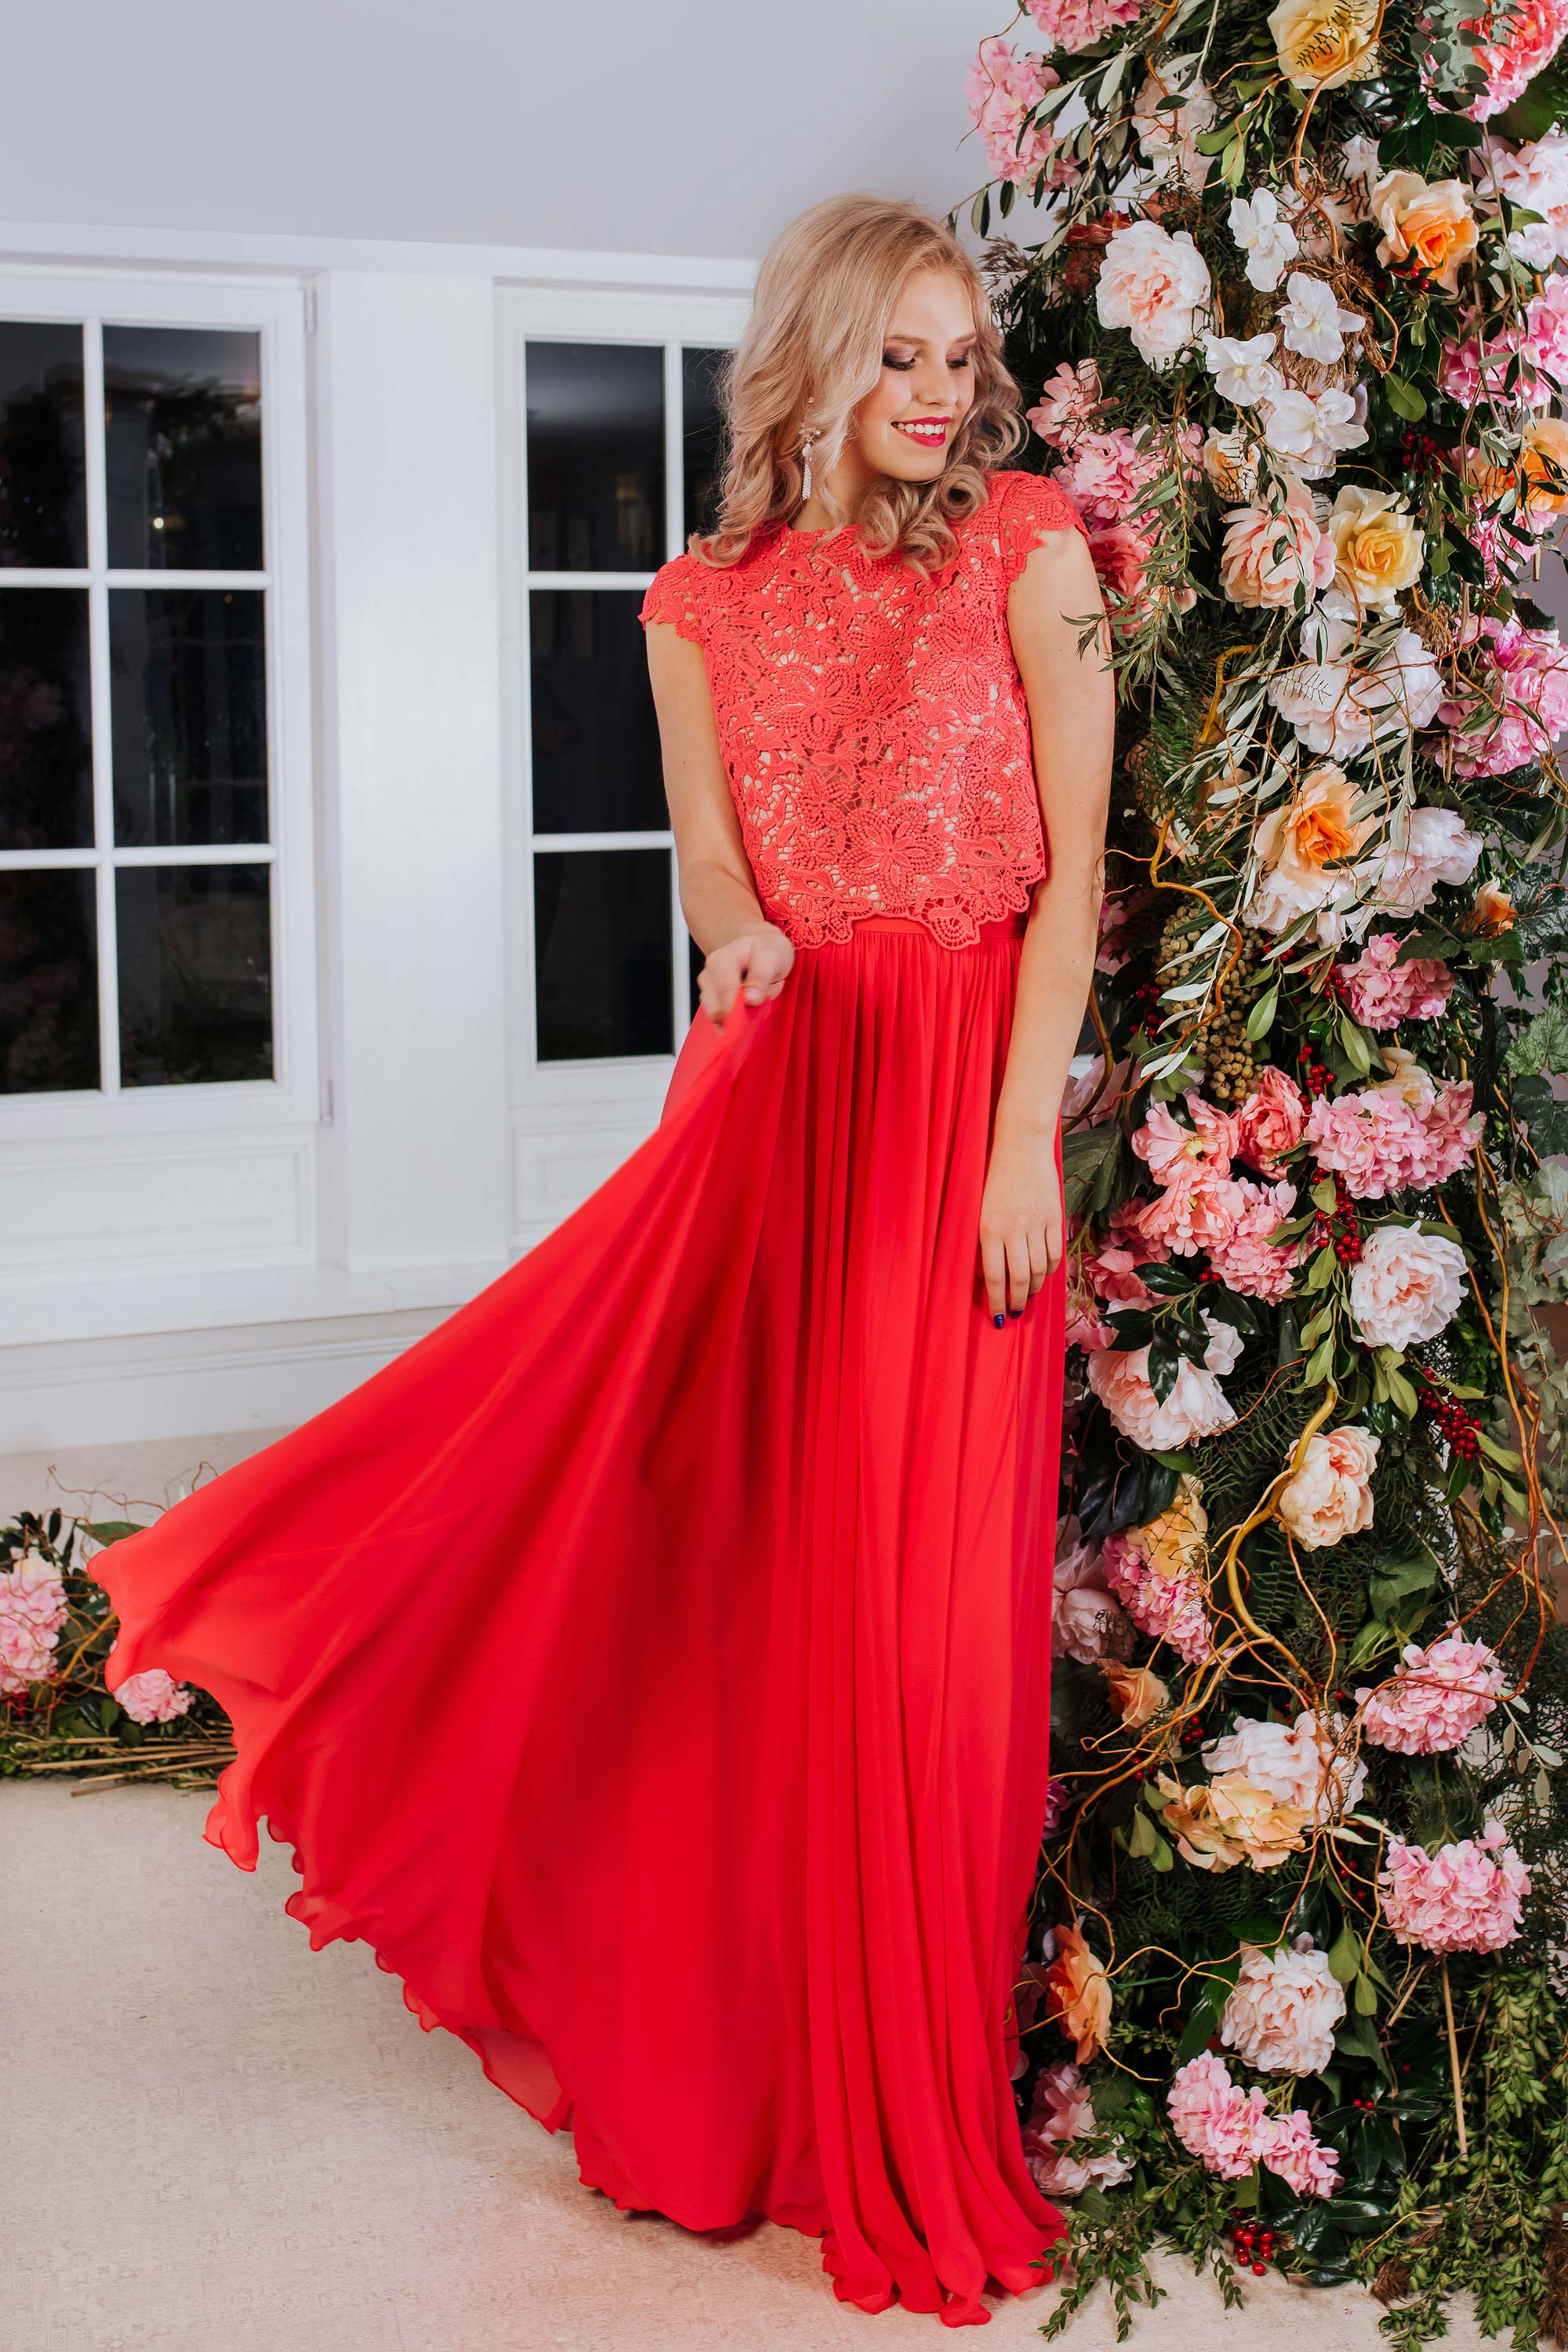 Evening Gowns in London for Your Most Special Moments